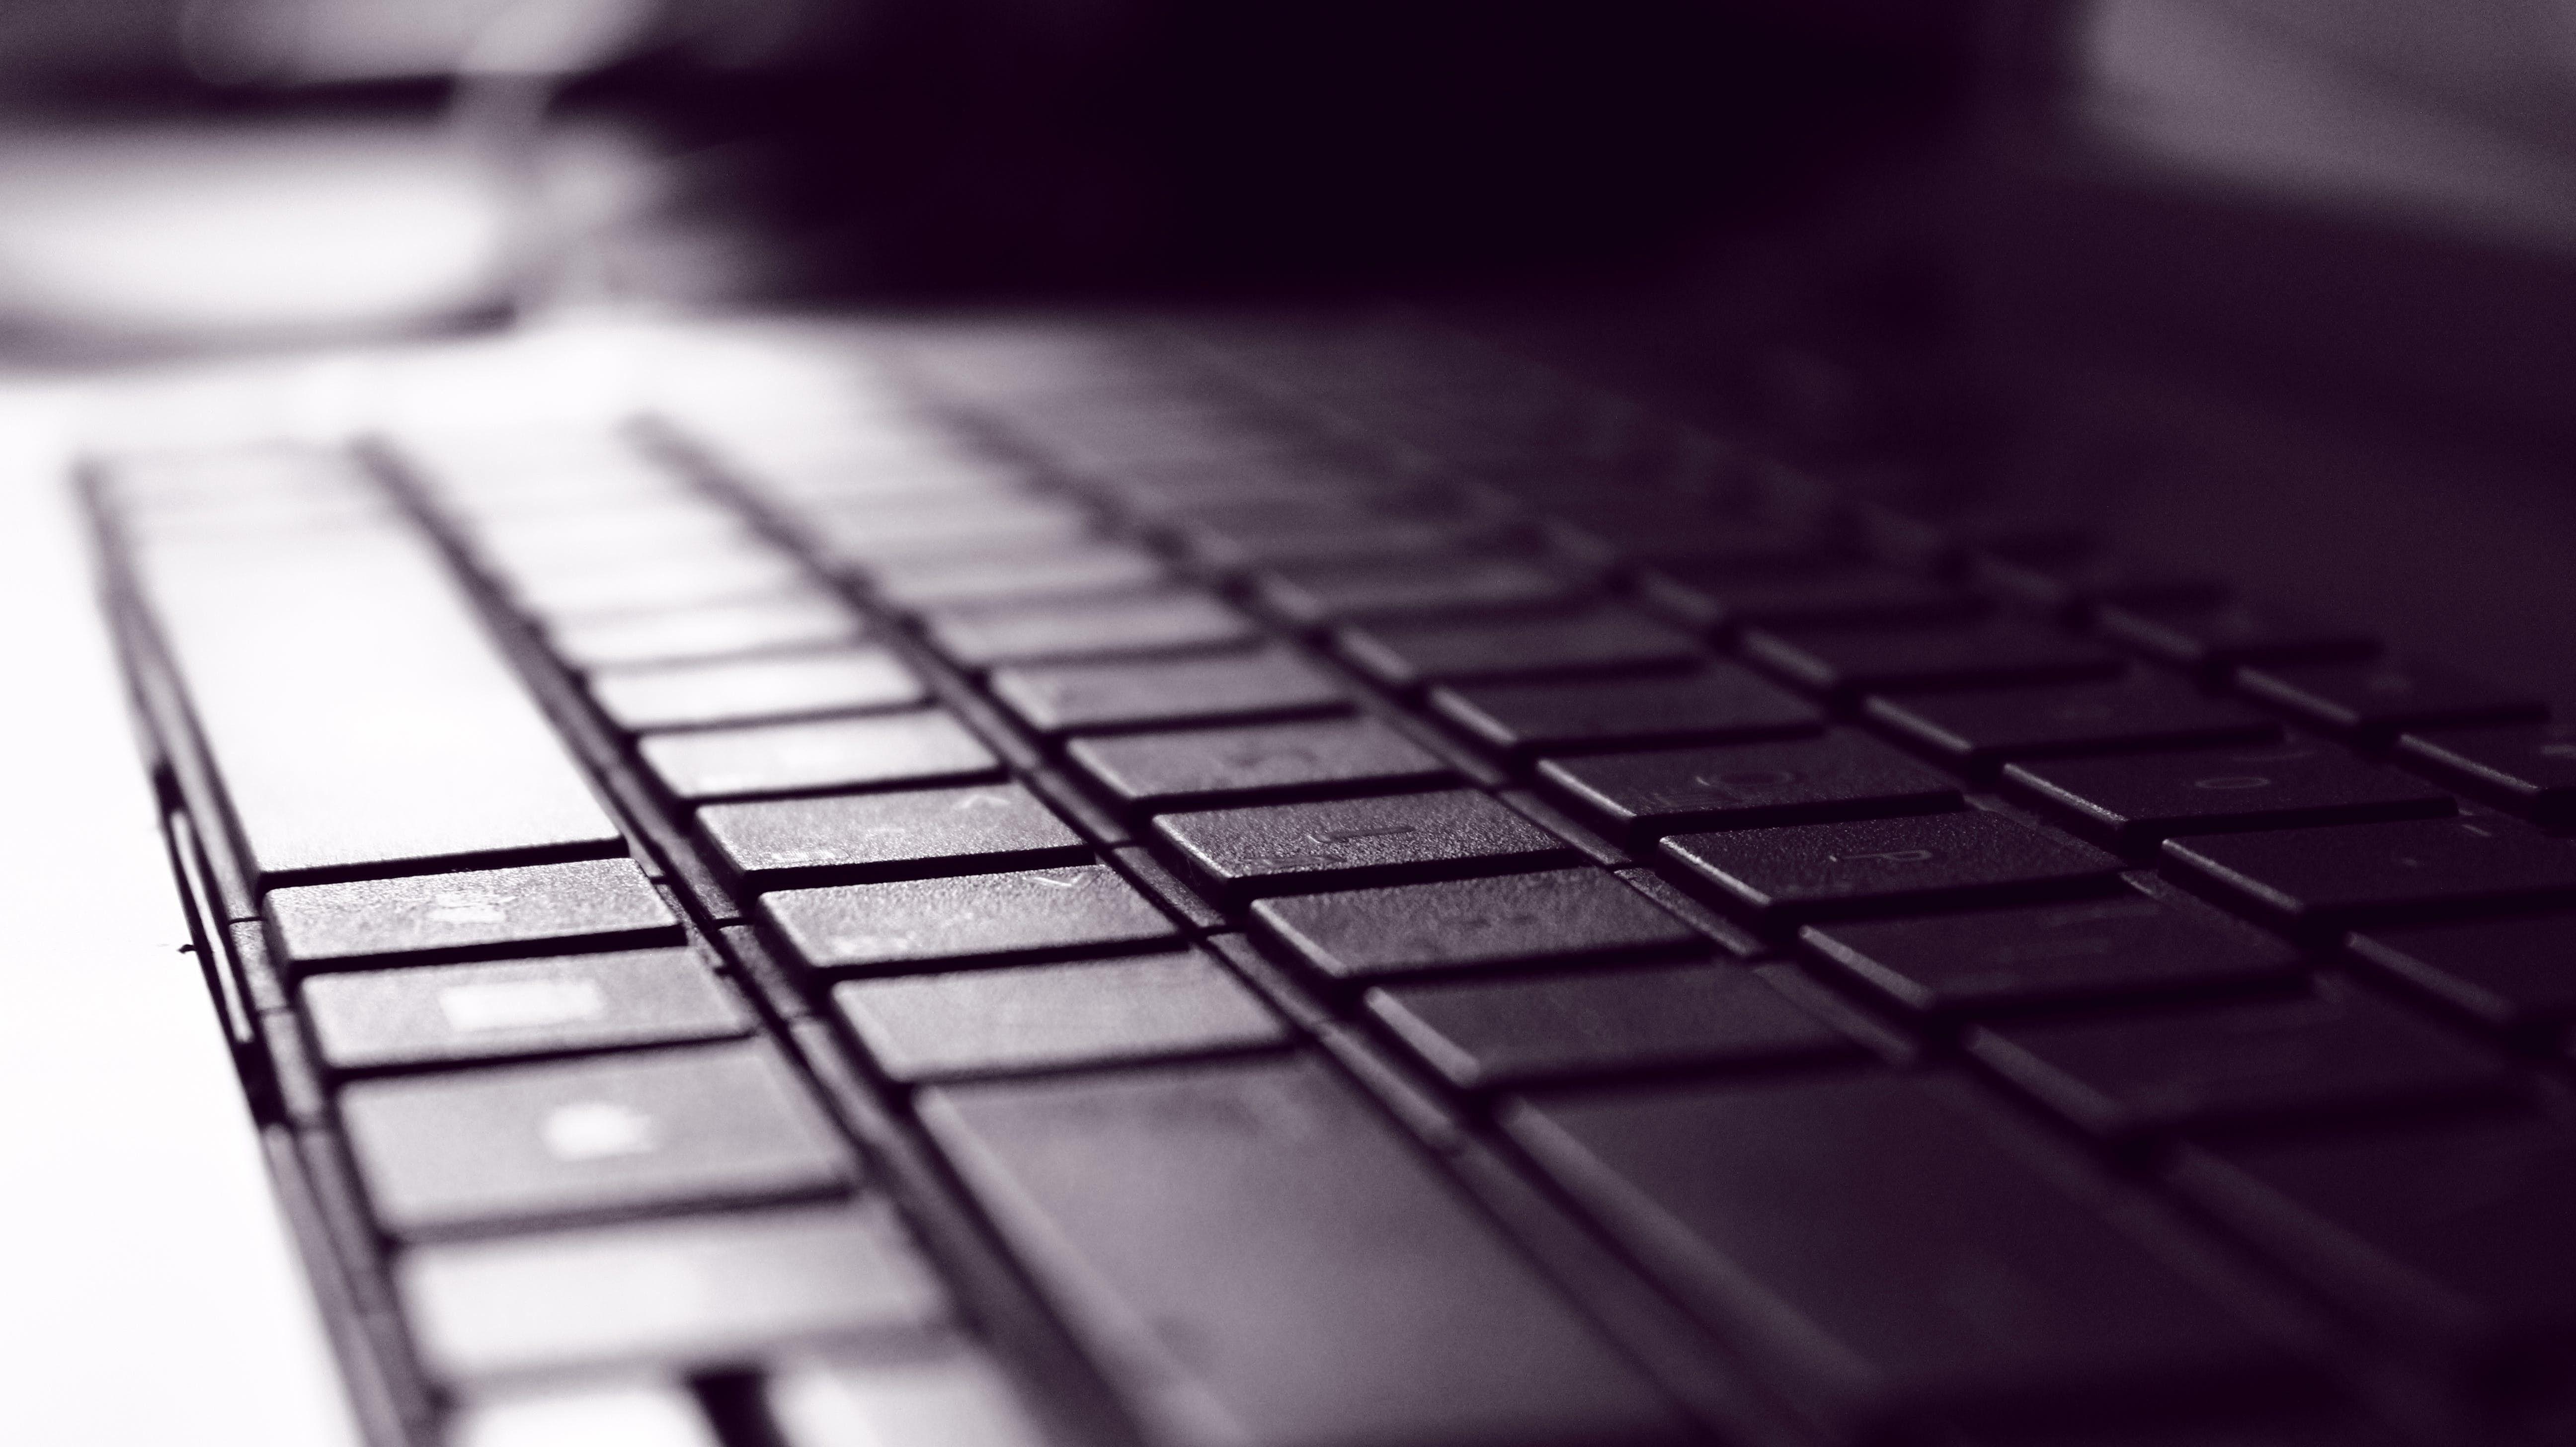 Computer Keyboard on Close Up Photography